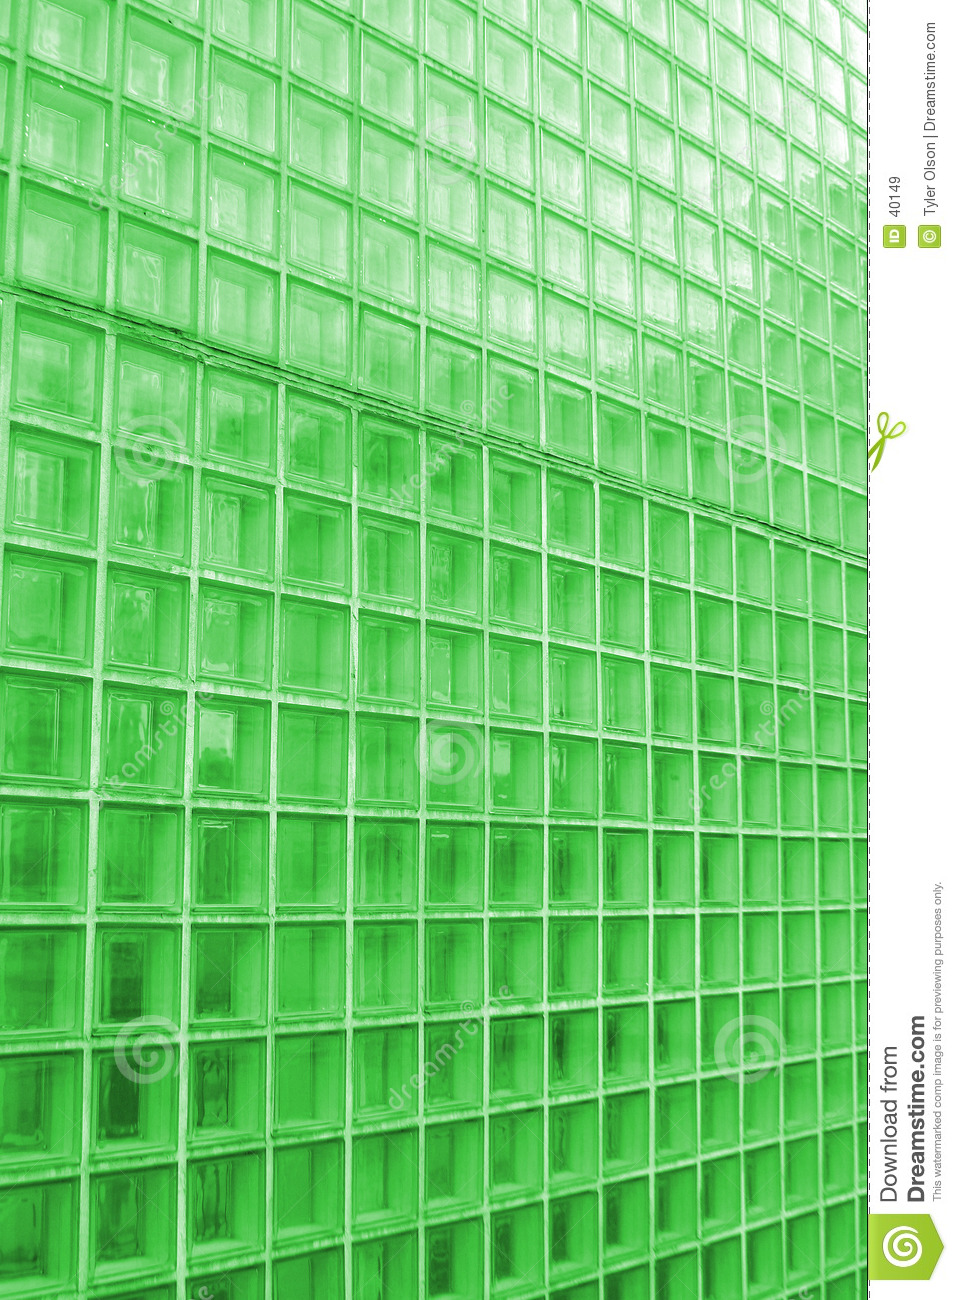 Clear Tile Texture tinted Green